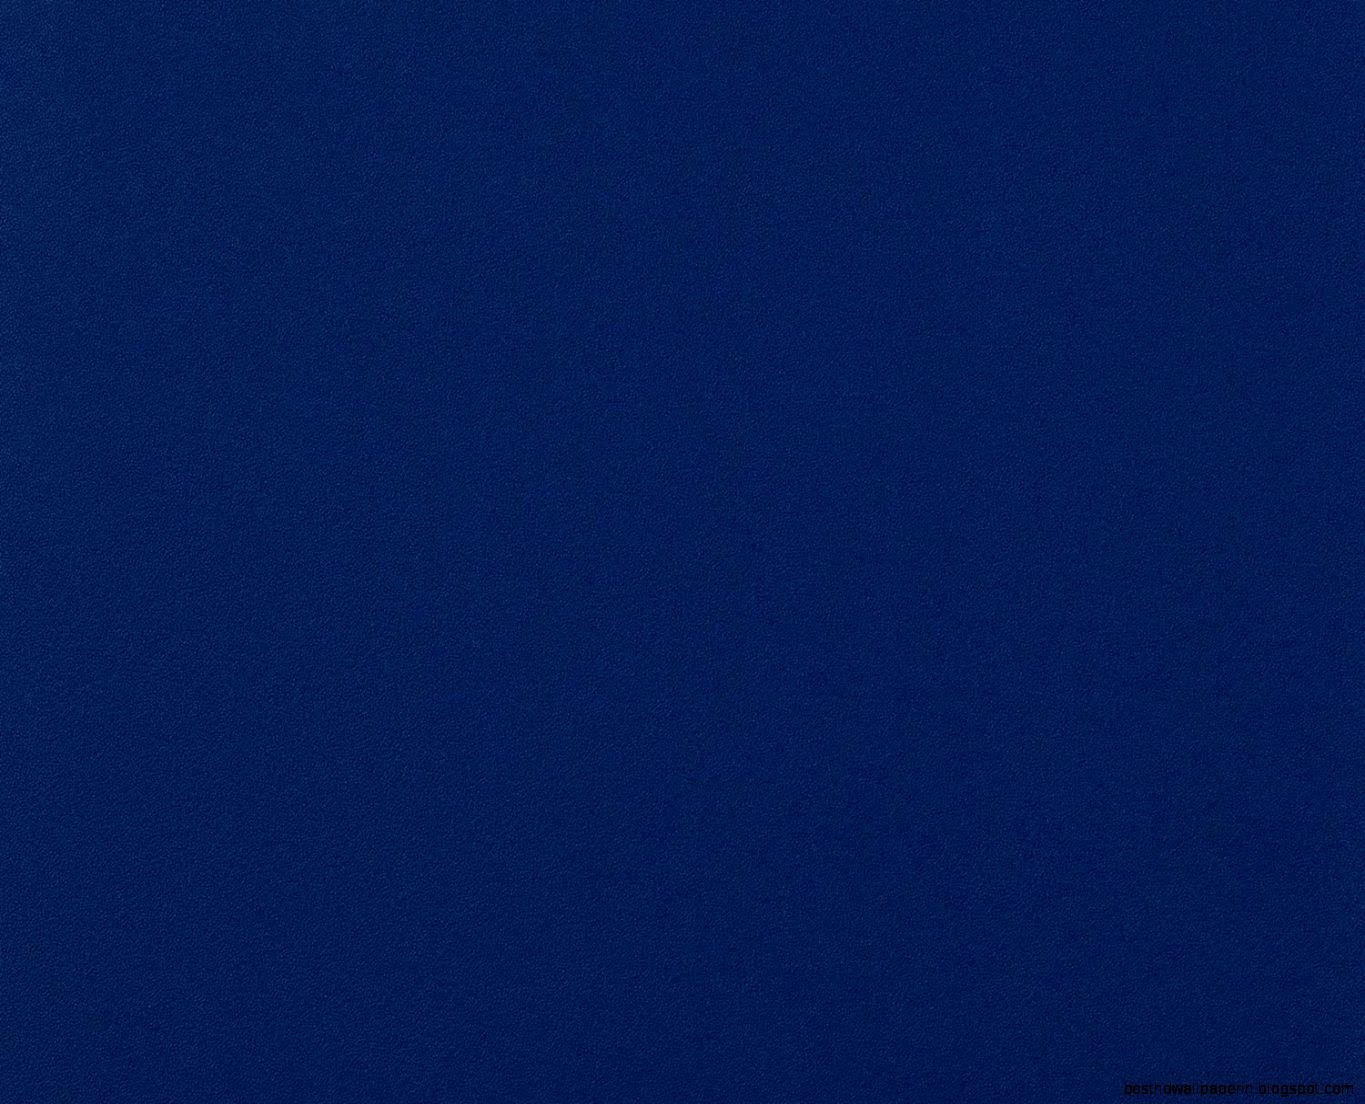 Plain blue background hd best hd wallpapers for Plain blue wallpaper